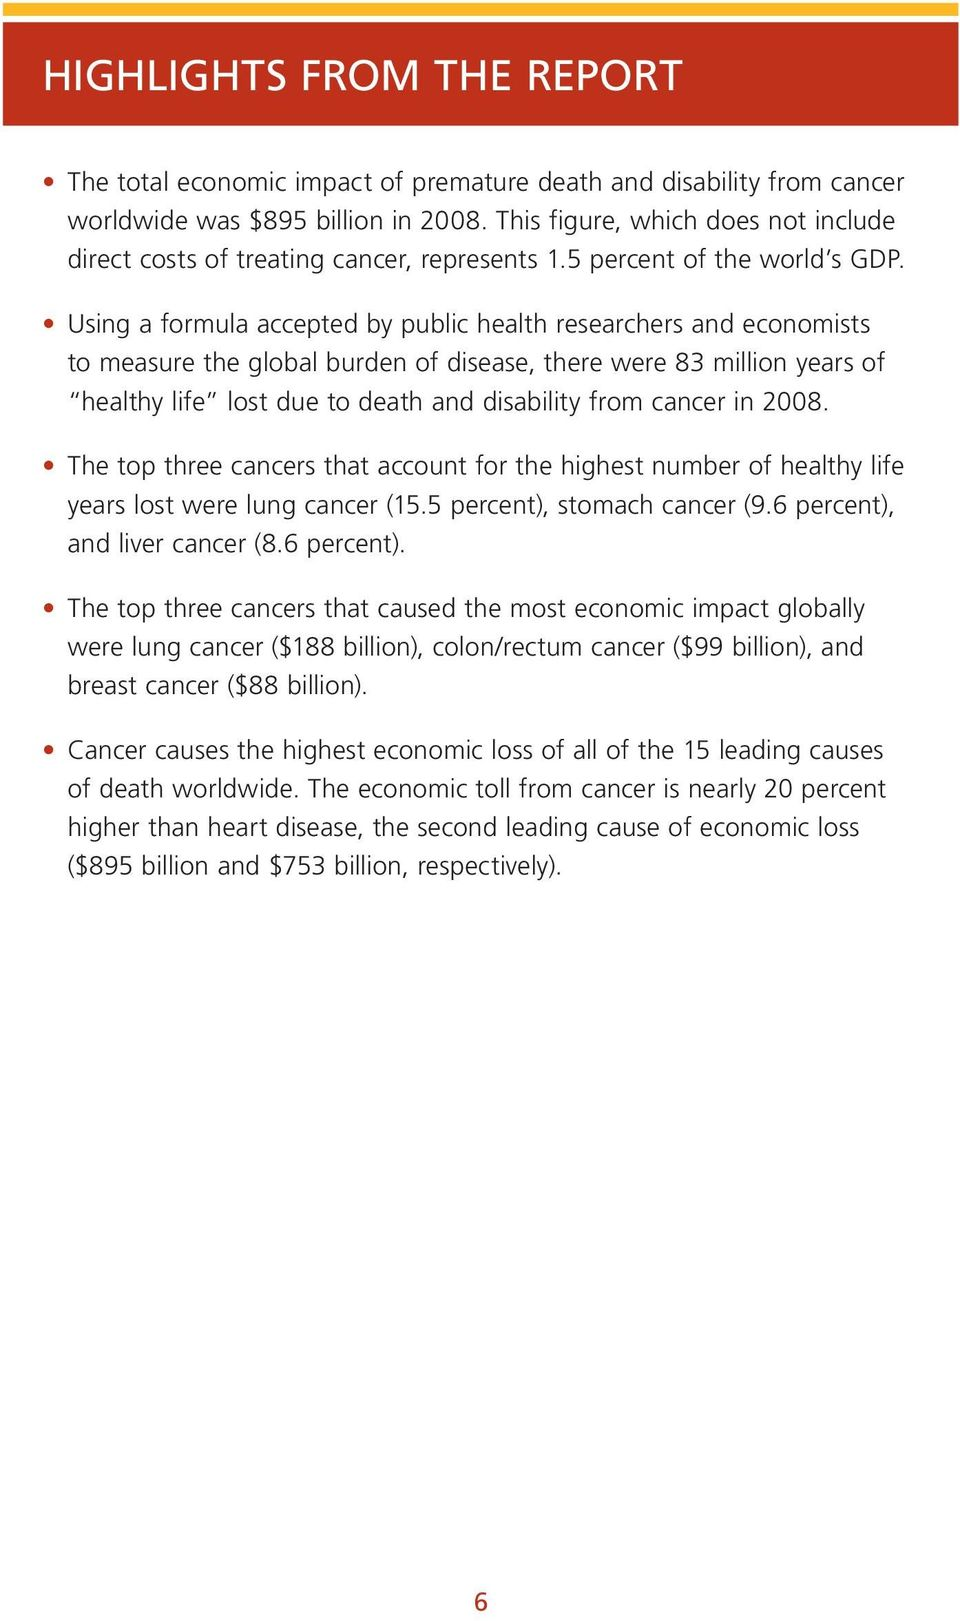 Using a formula accepted by public health researchers and economists to measure the global burden of disease, there were 83 million years of healthy life lost due to death and disability from cancer